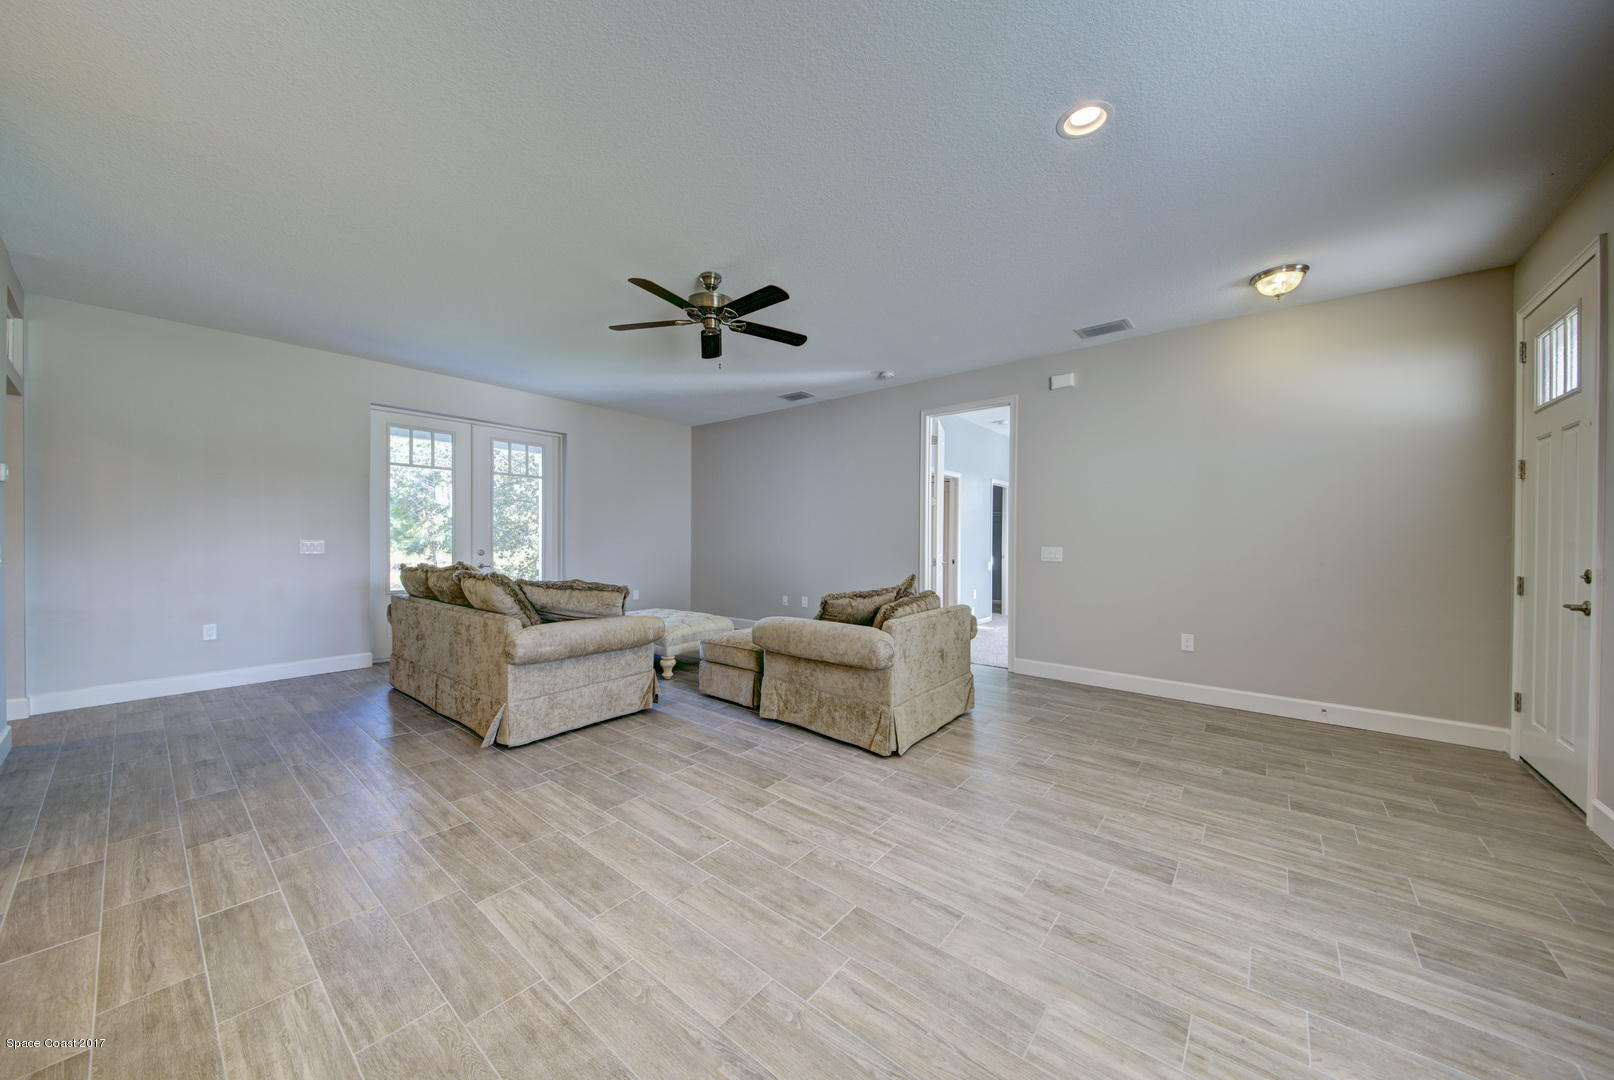 Living Area with French Doors to Patio